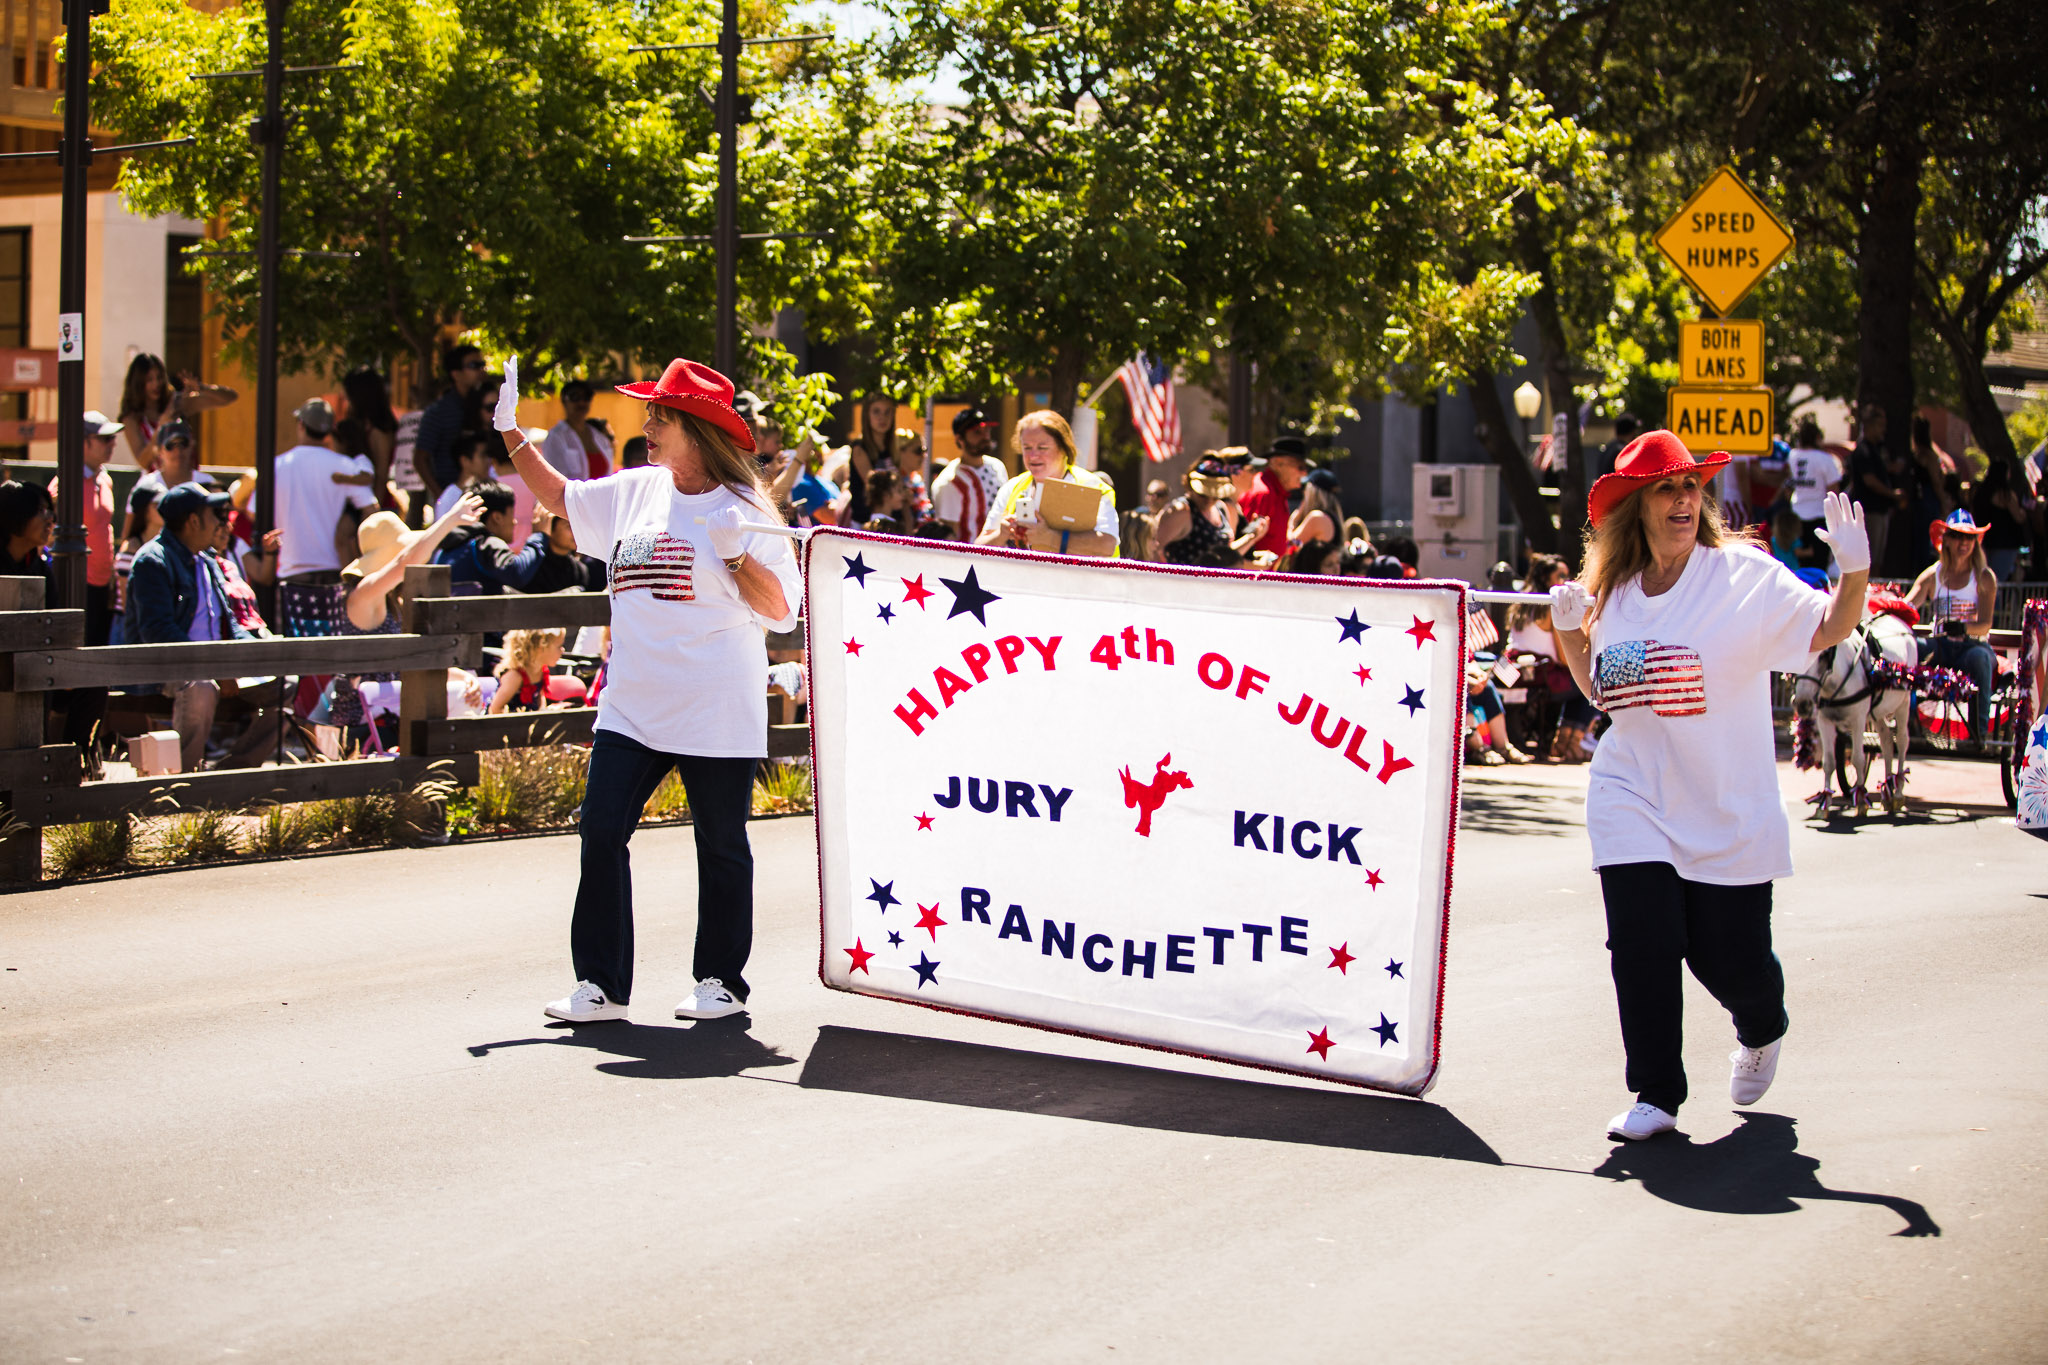 Archer_Inspired_Photography_Morgan_Hill_California_4th_of_july_parade-154.jpg